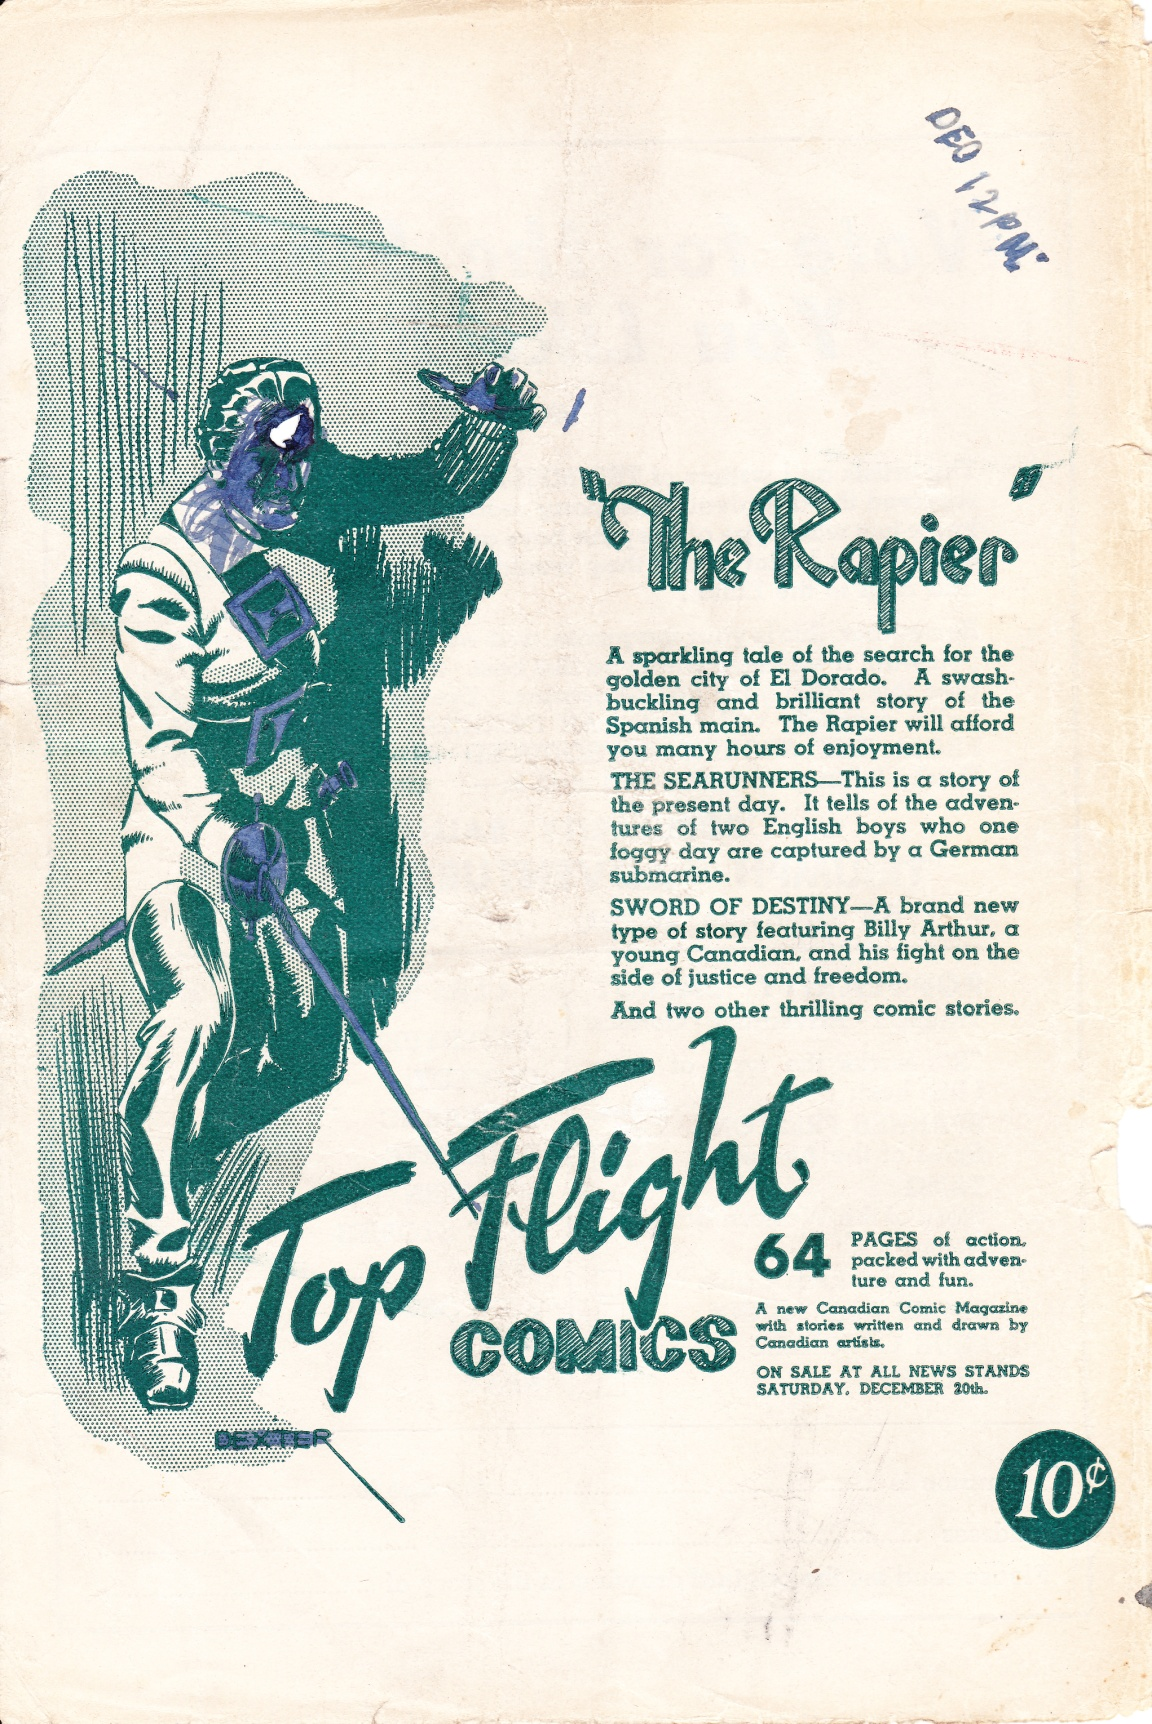 C:\Users\Robert\Documents\CARTOONING ILLUSTRATION ANIMATION\IMAGE CARTOON\IMAGE CARTOON R\RAPIER Top Flight Comics advertisement.jpg